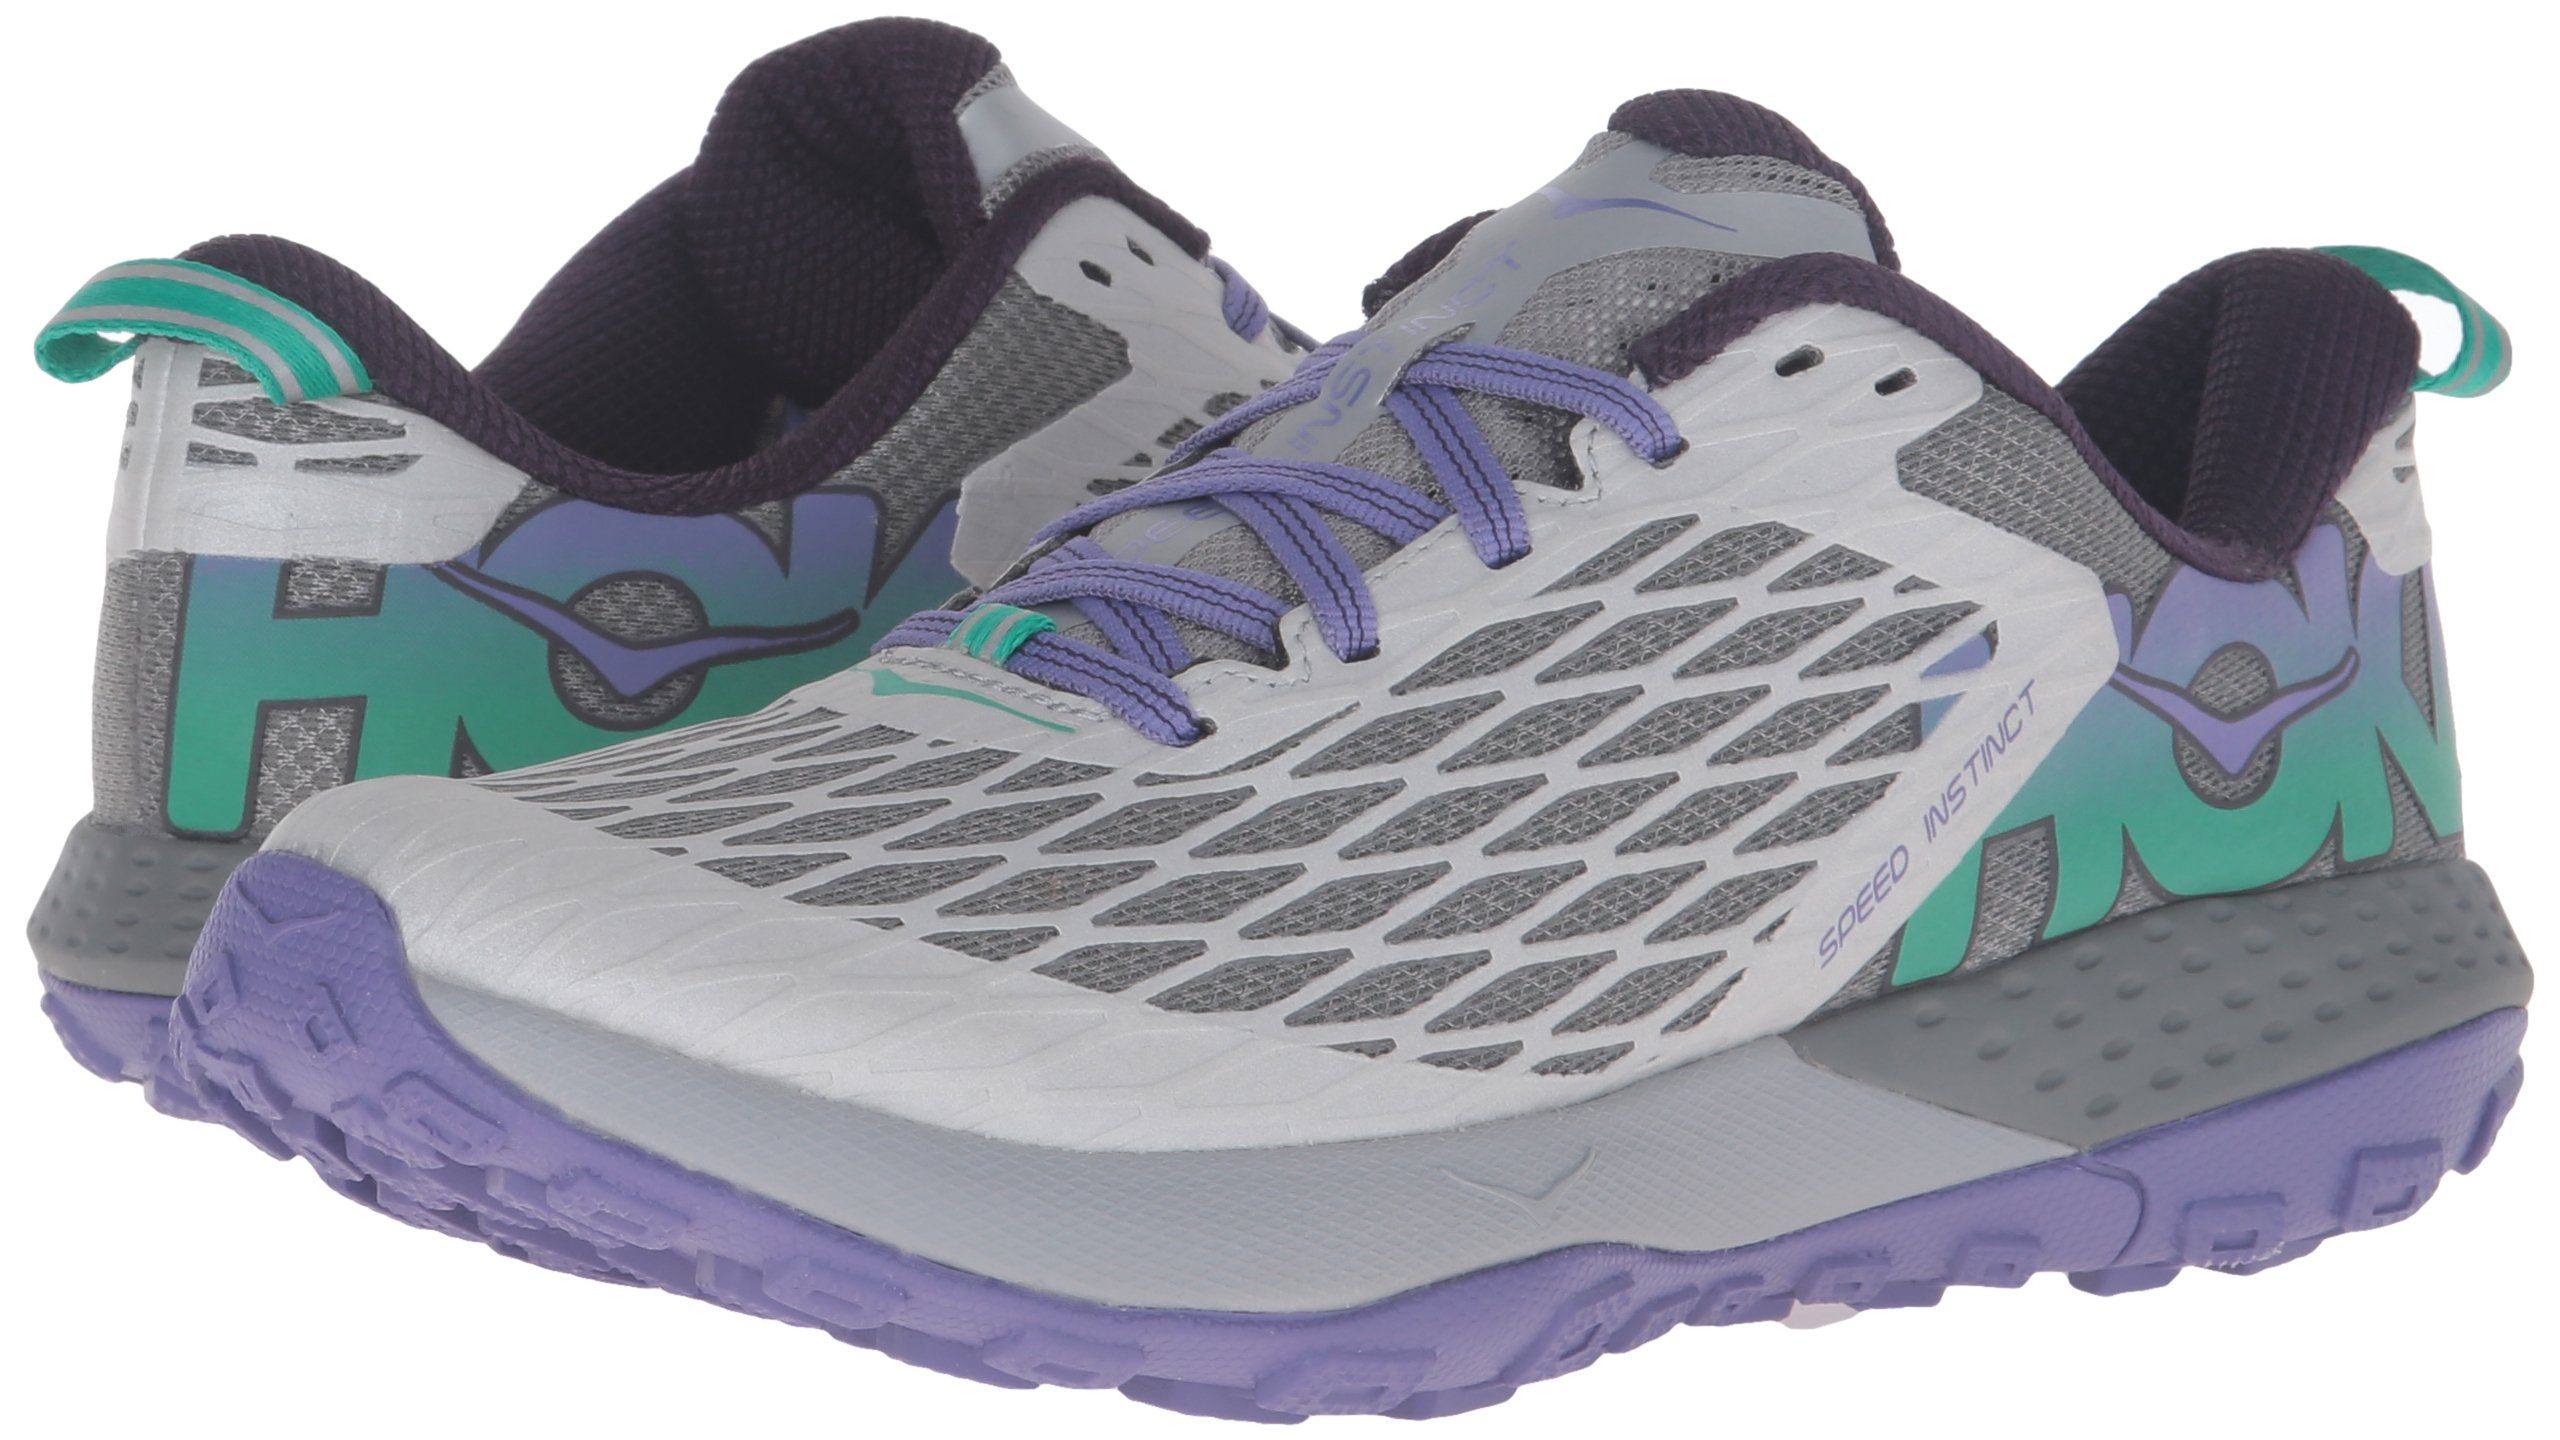 812QxjTYl2L - HOKA One One Speed Instinct - W -